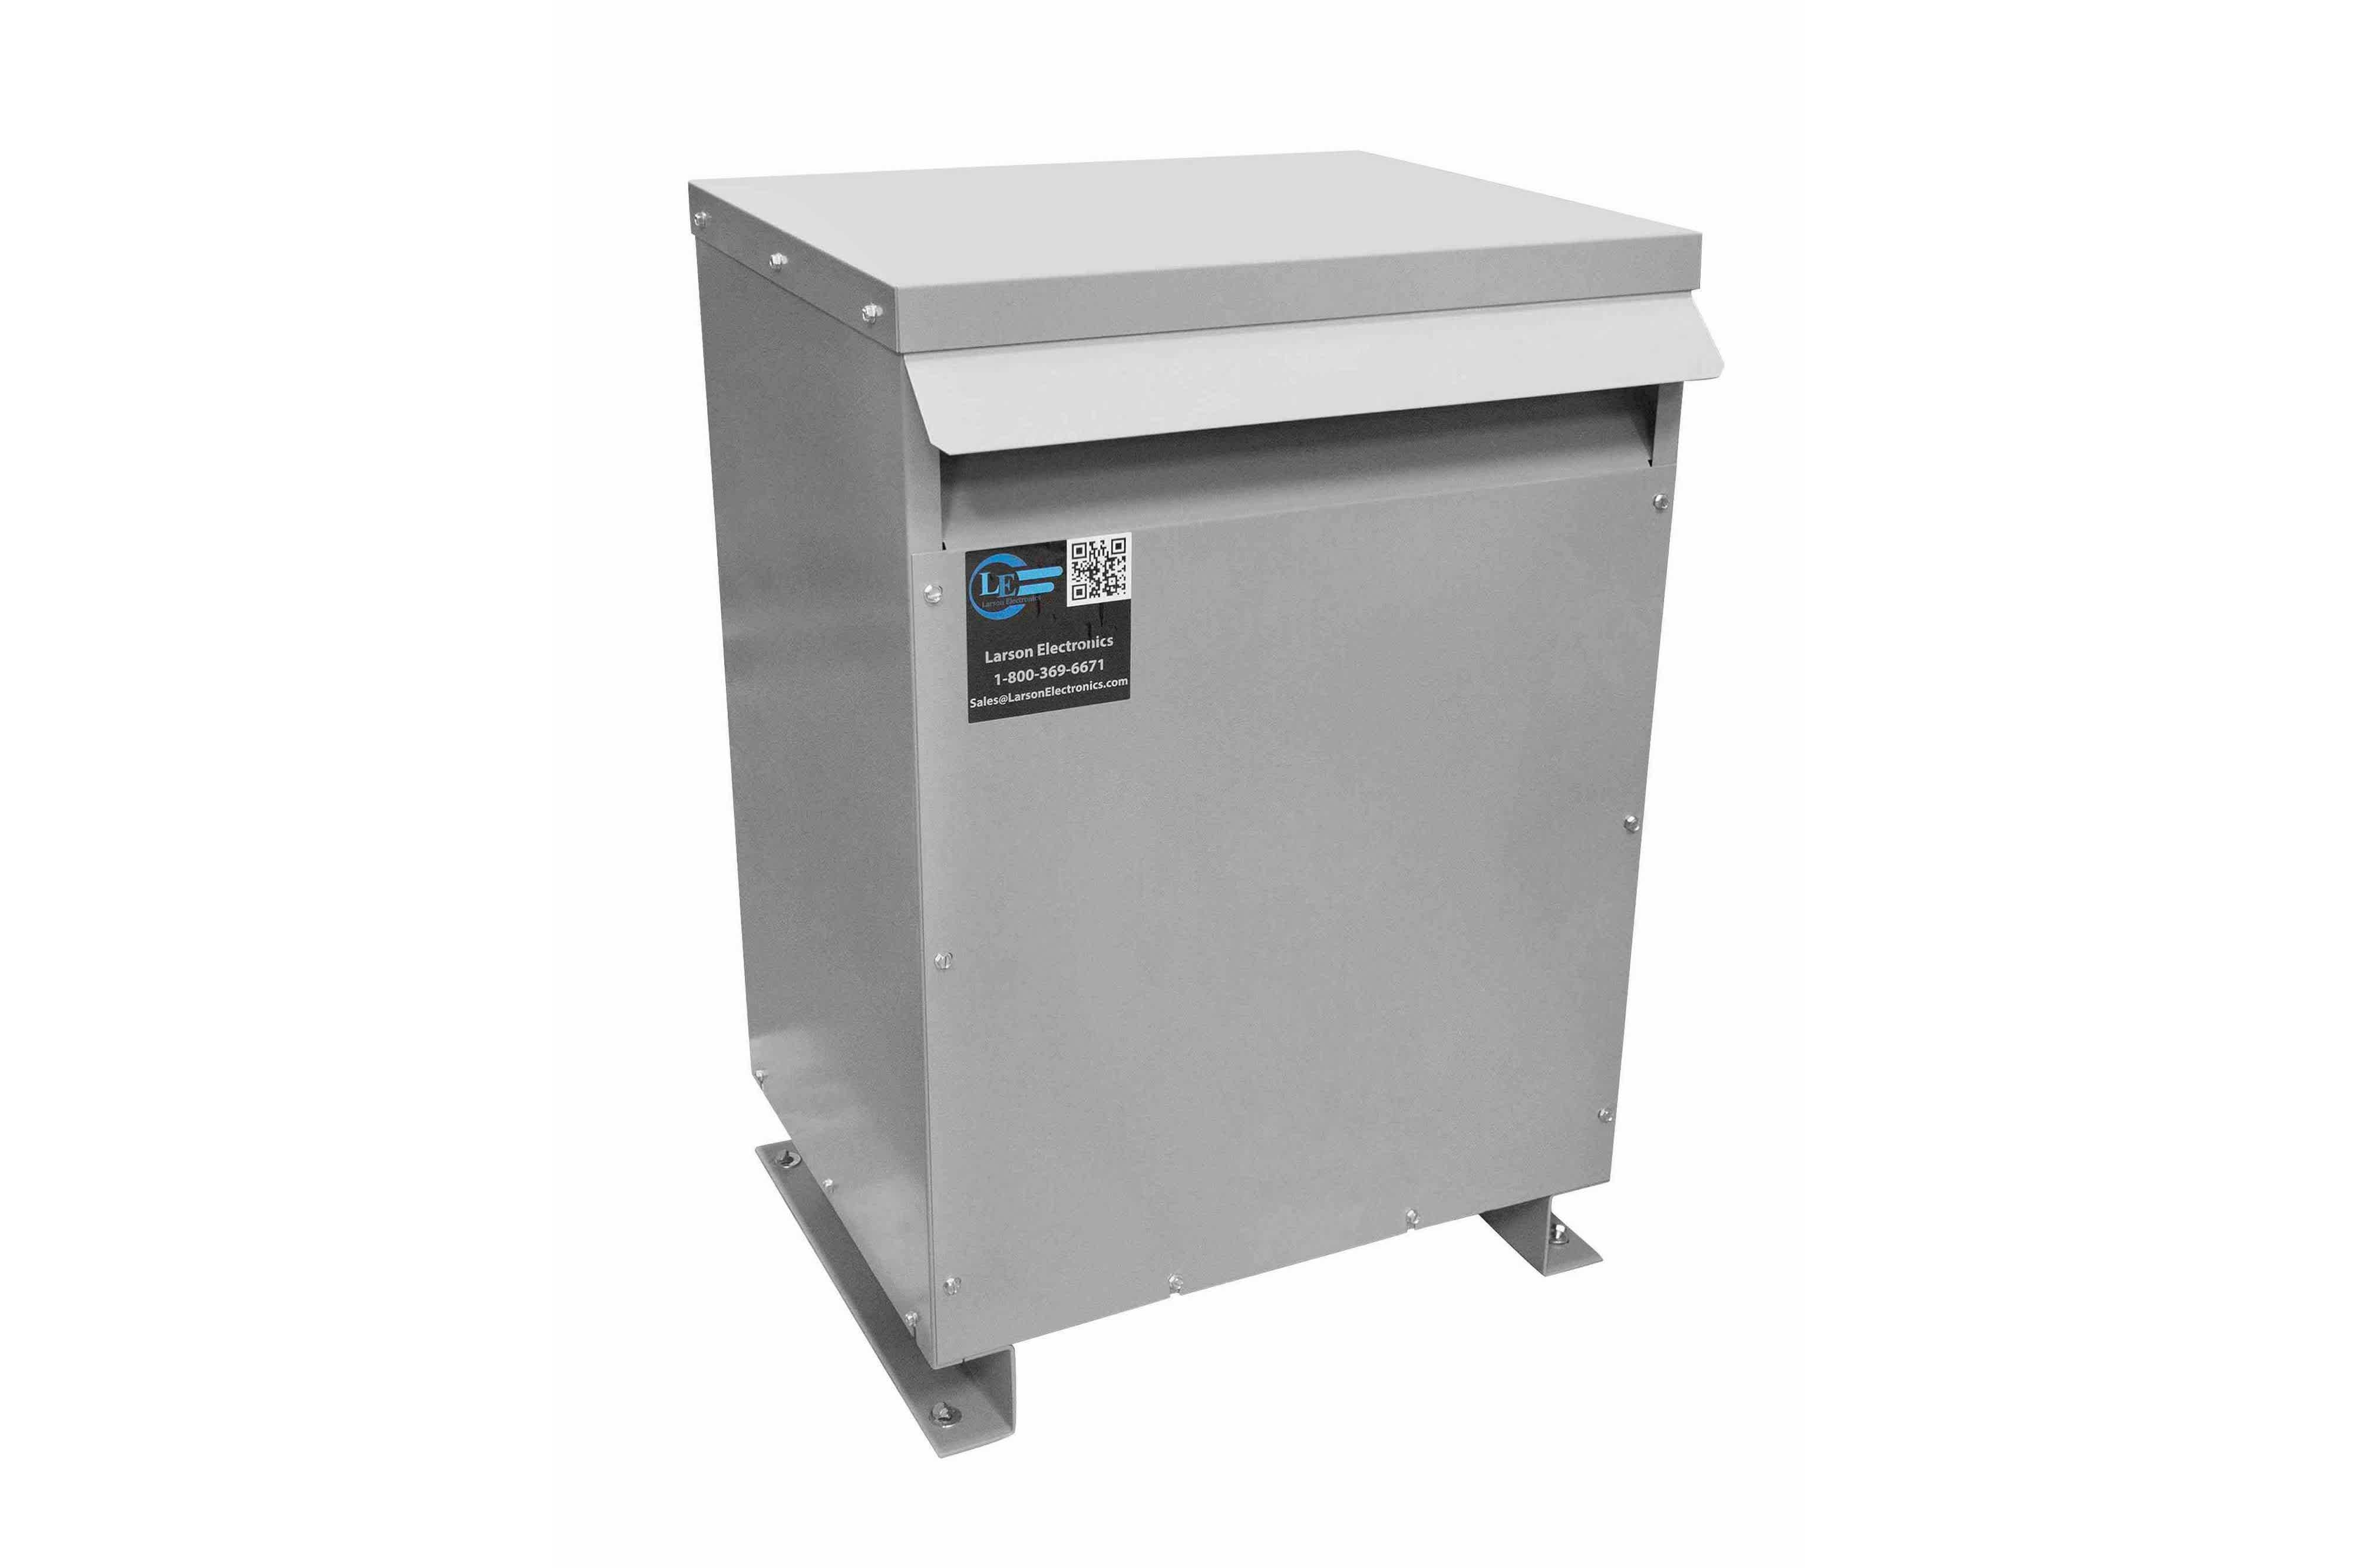 750 kVA 3PH Isolation Transformer, 240V Delta Primary, 415V Delta Secondary, N3R, Ventilated, 60 Hz